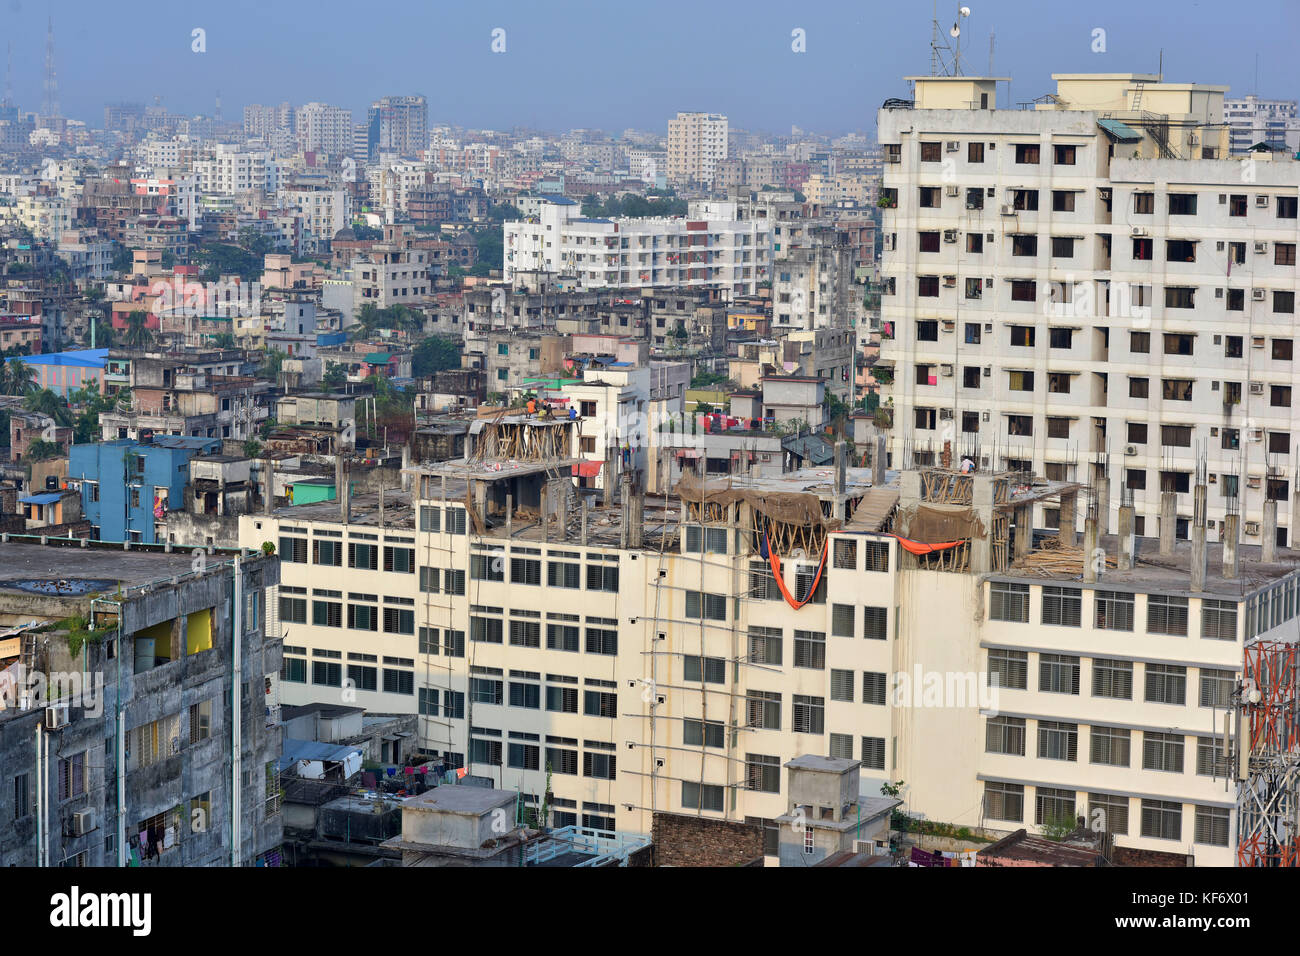 Dhaka, Bangladesh. 26th Oct, 2017.  Birdseye view of the Dhaka Metropolitan city. Dhaka, a city of over 15 million - Stock Image